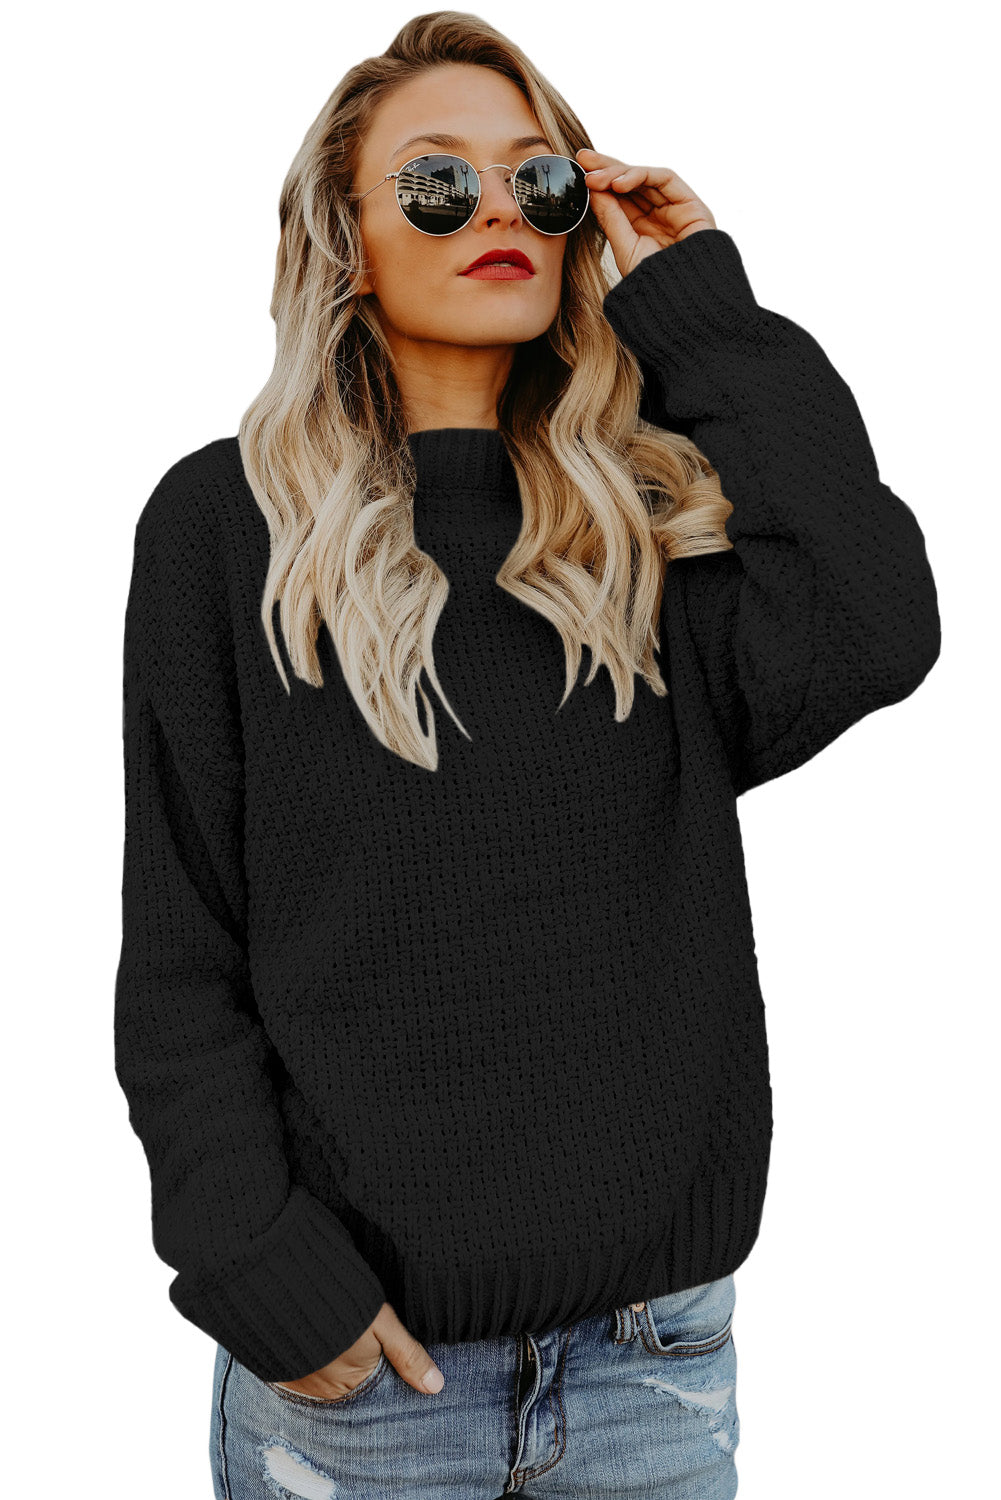 A| Chicloth Black Reversible Velvet O Neck Sweater-Sweaters-Chicloth